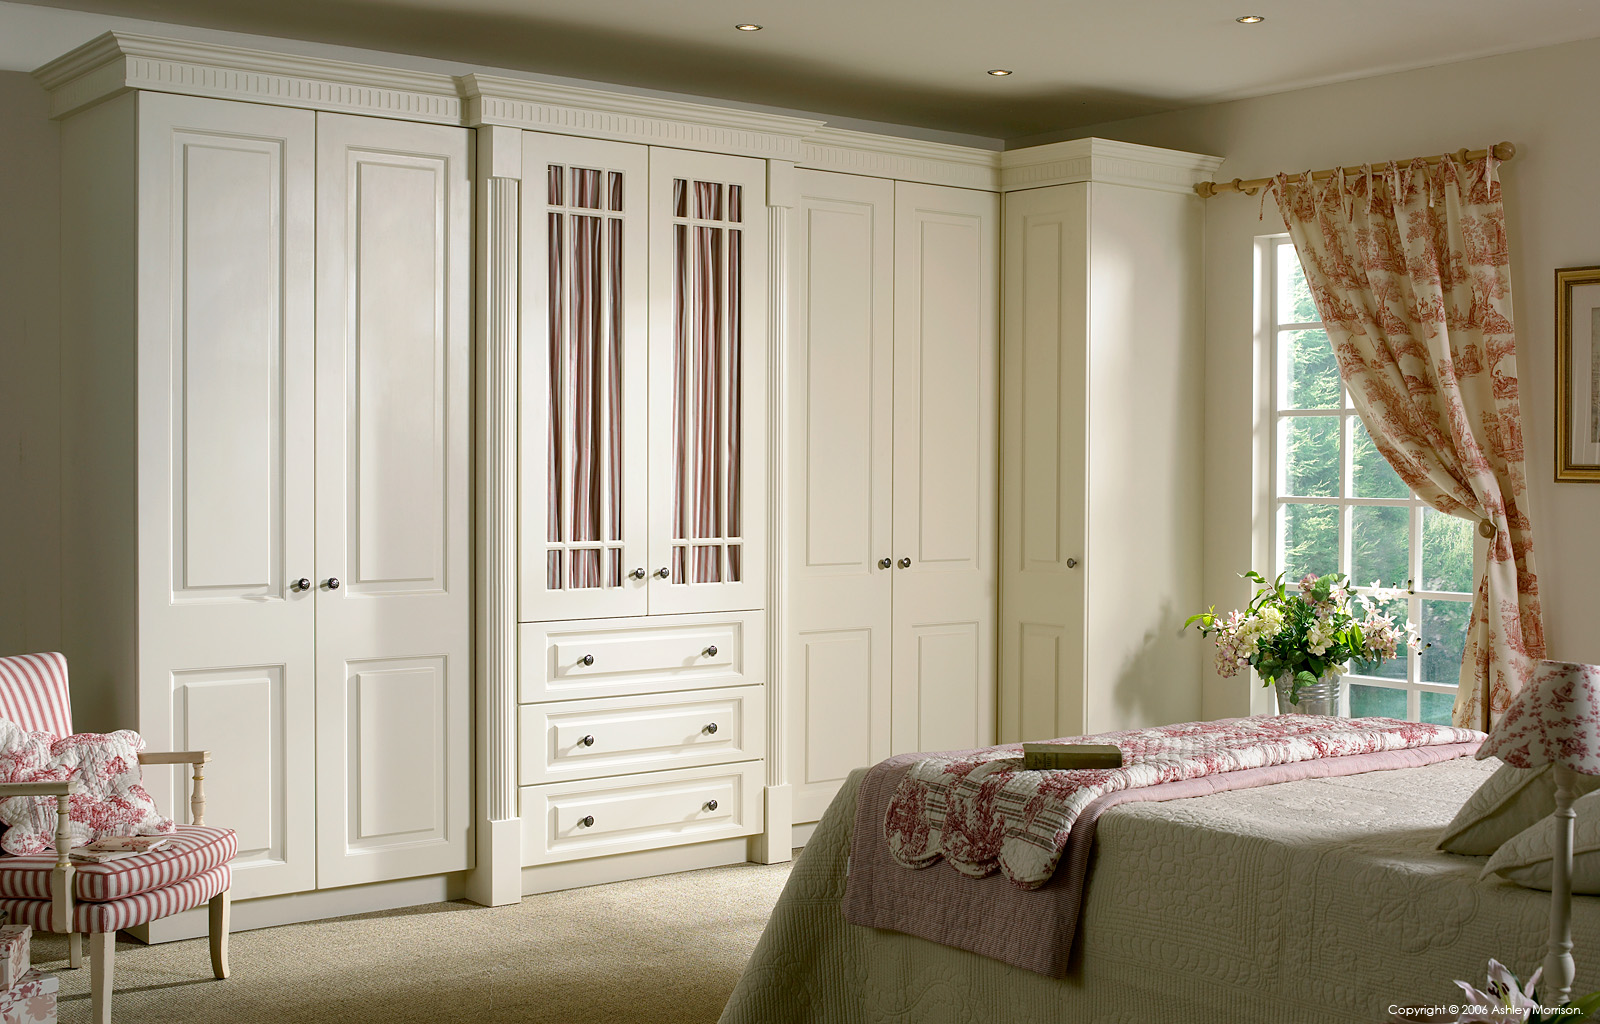 O&S doors bedroom set by Ashley Morrison and Marie McMillen.